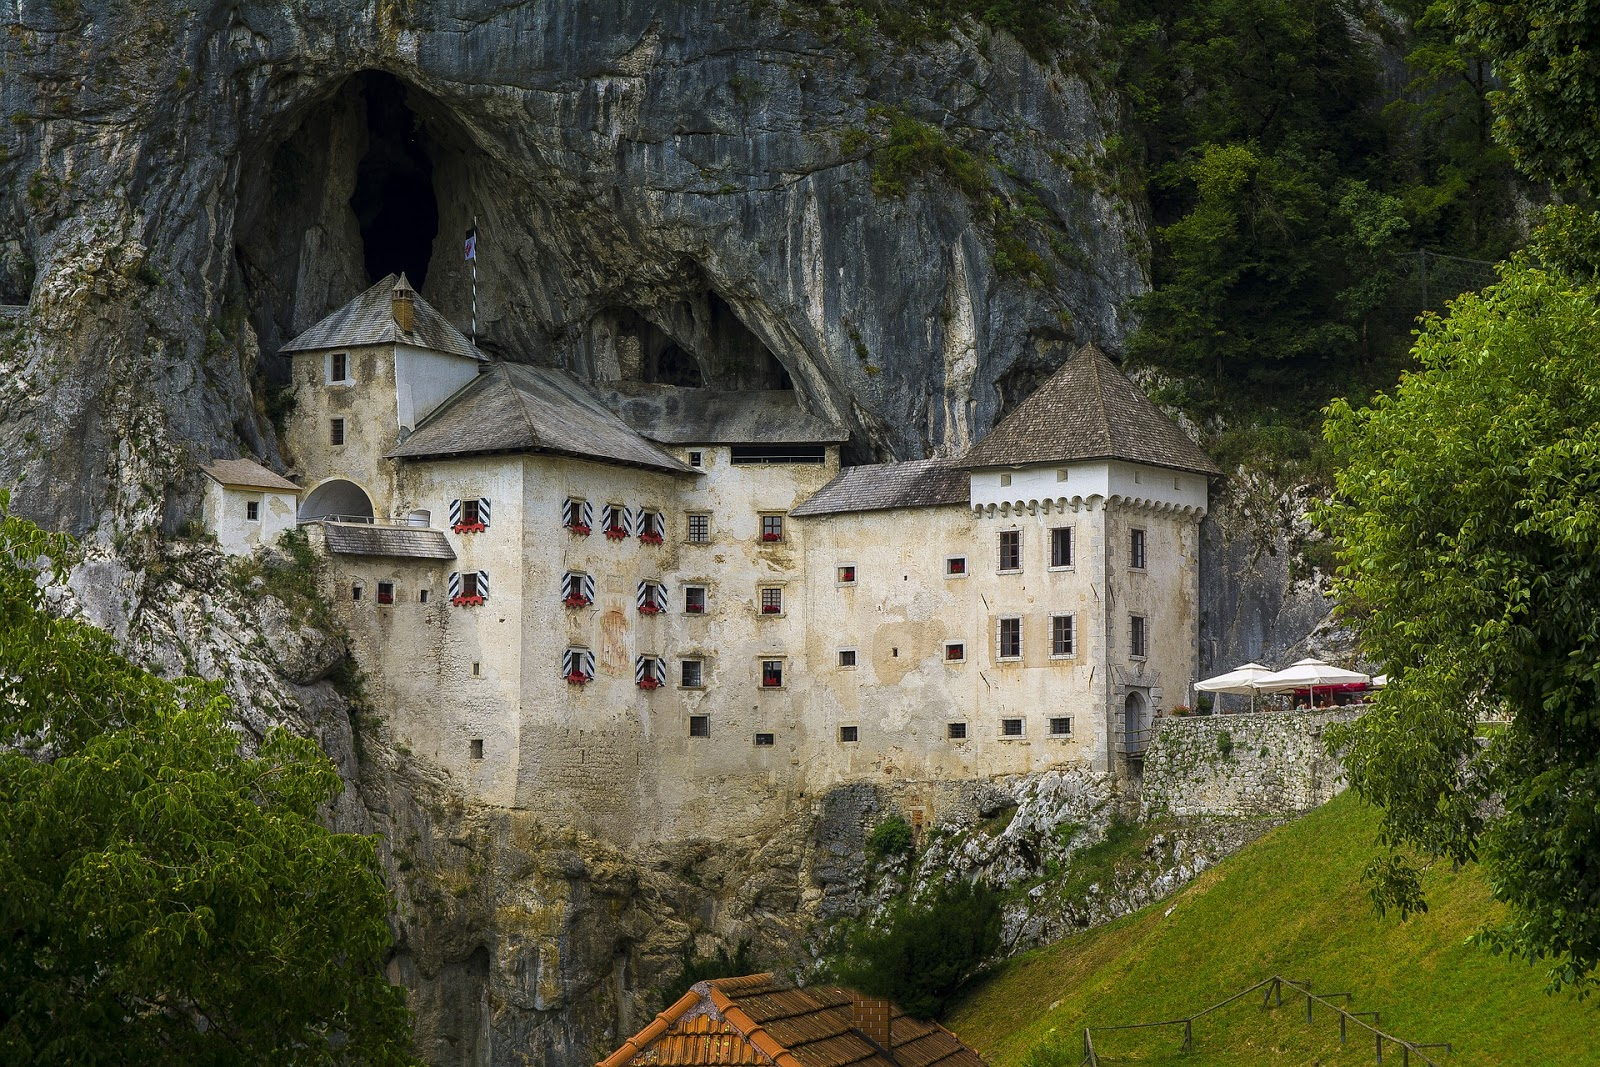 Visiting Slovenia - Seaside Castles and Countryside Wineries